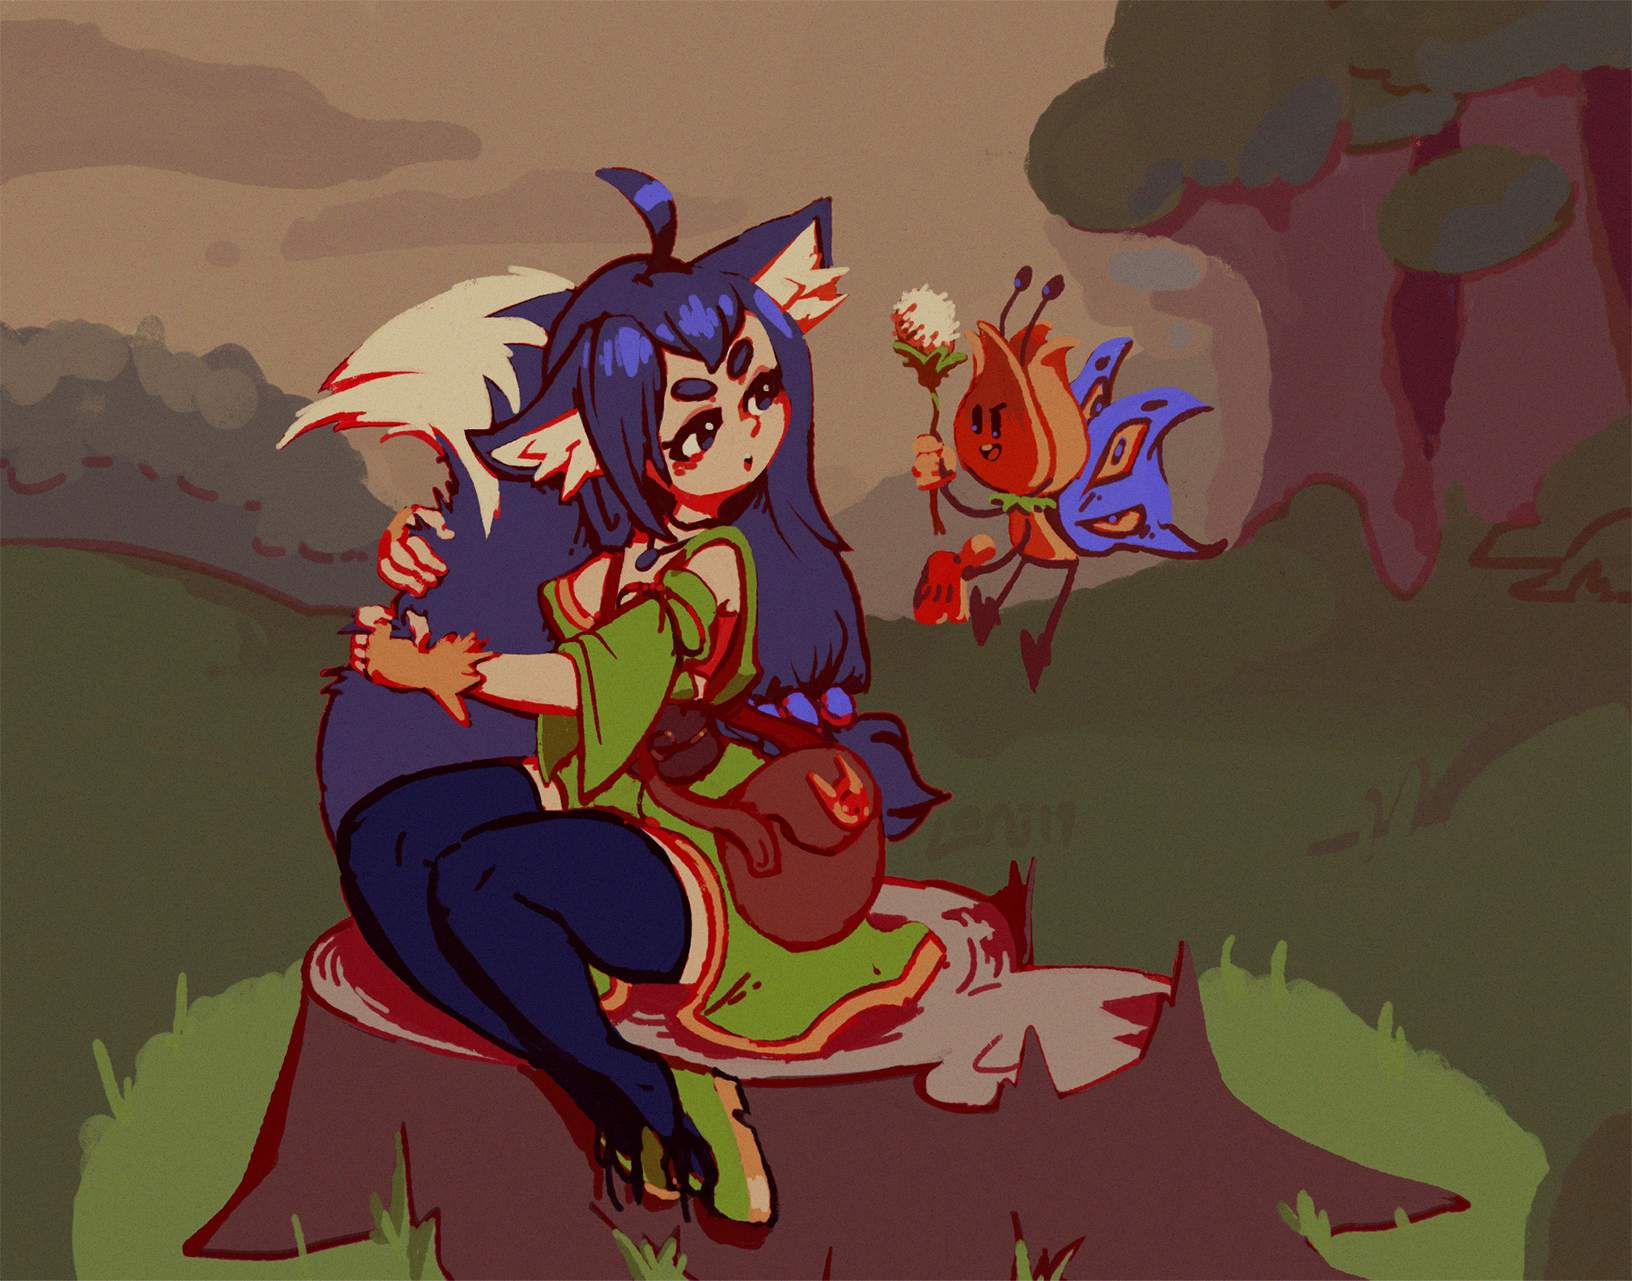 a foxgirl in a forest, shooing a mean fairy